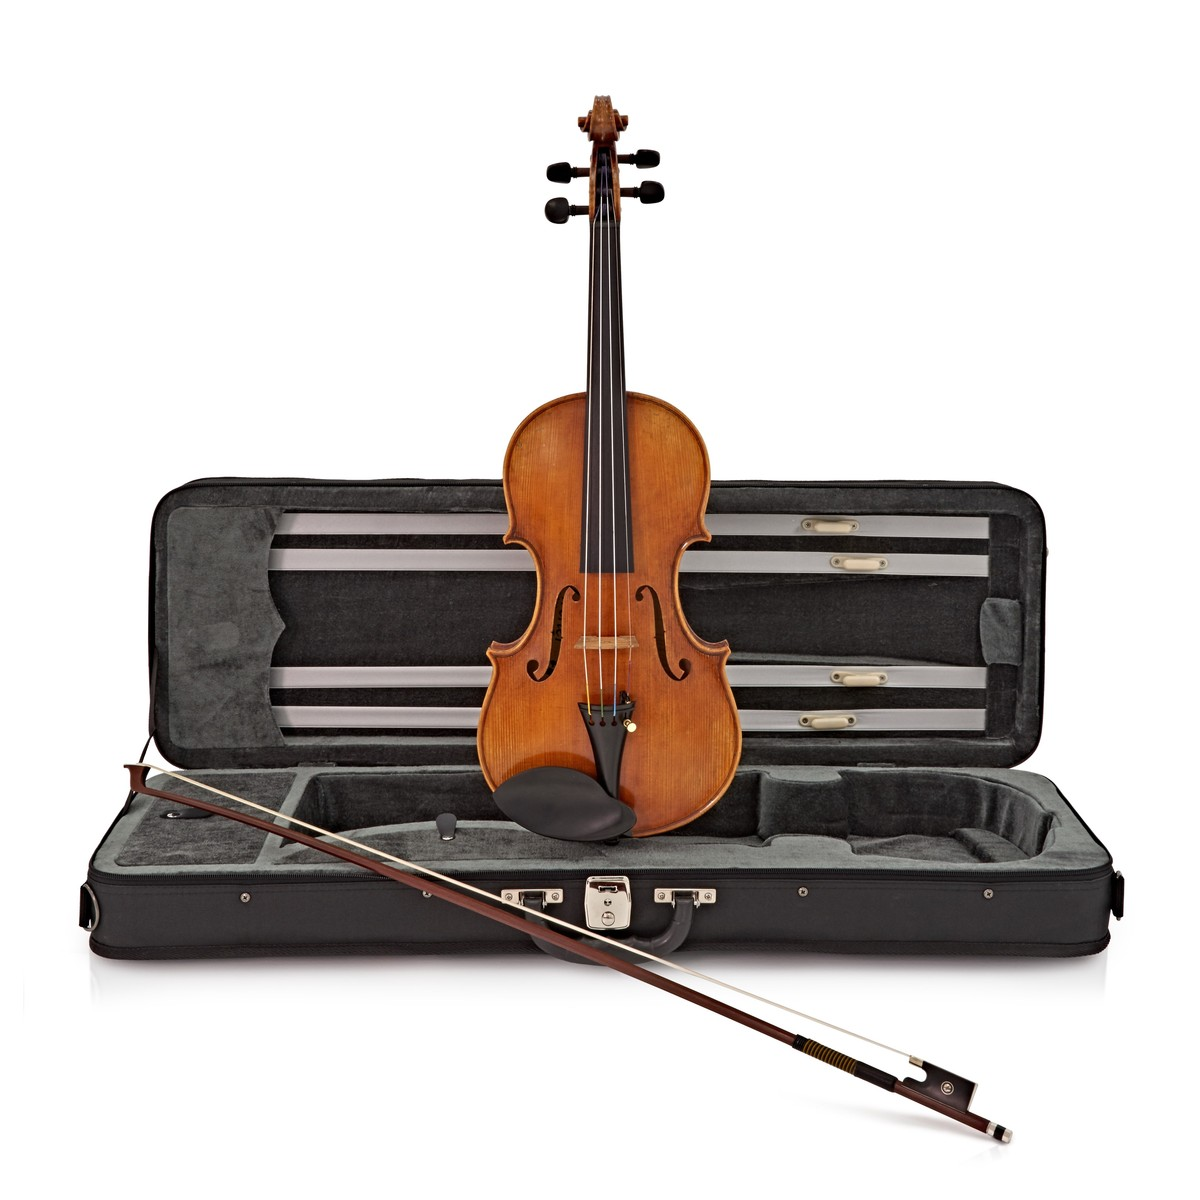 Archer 44V-800 Professional Violin by Gear4music at Gear4music